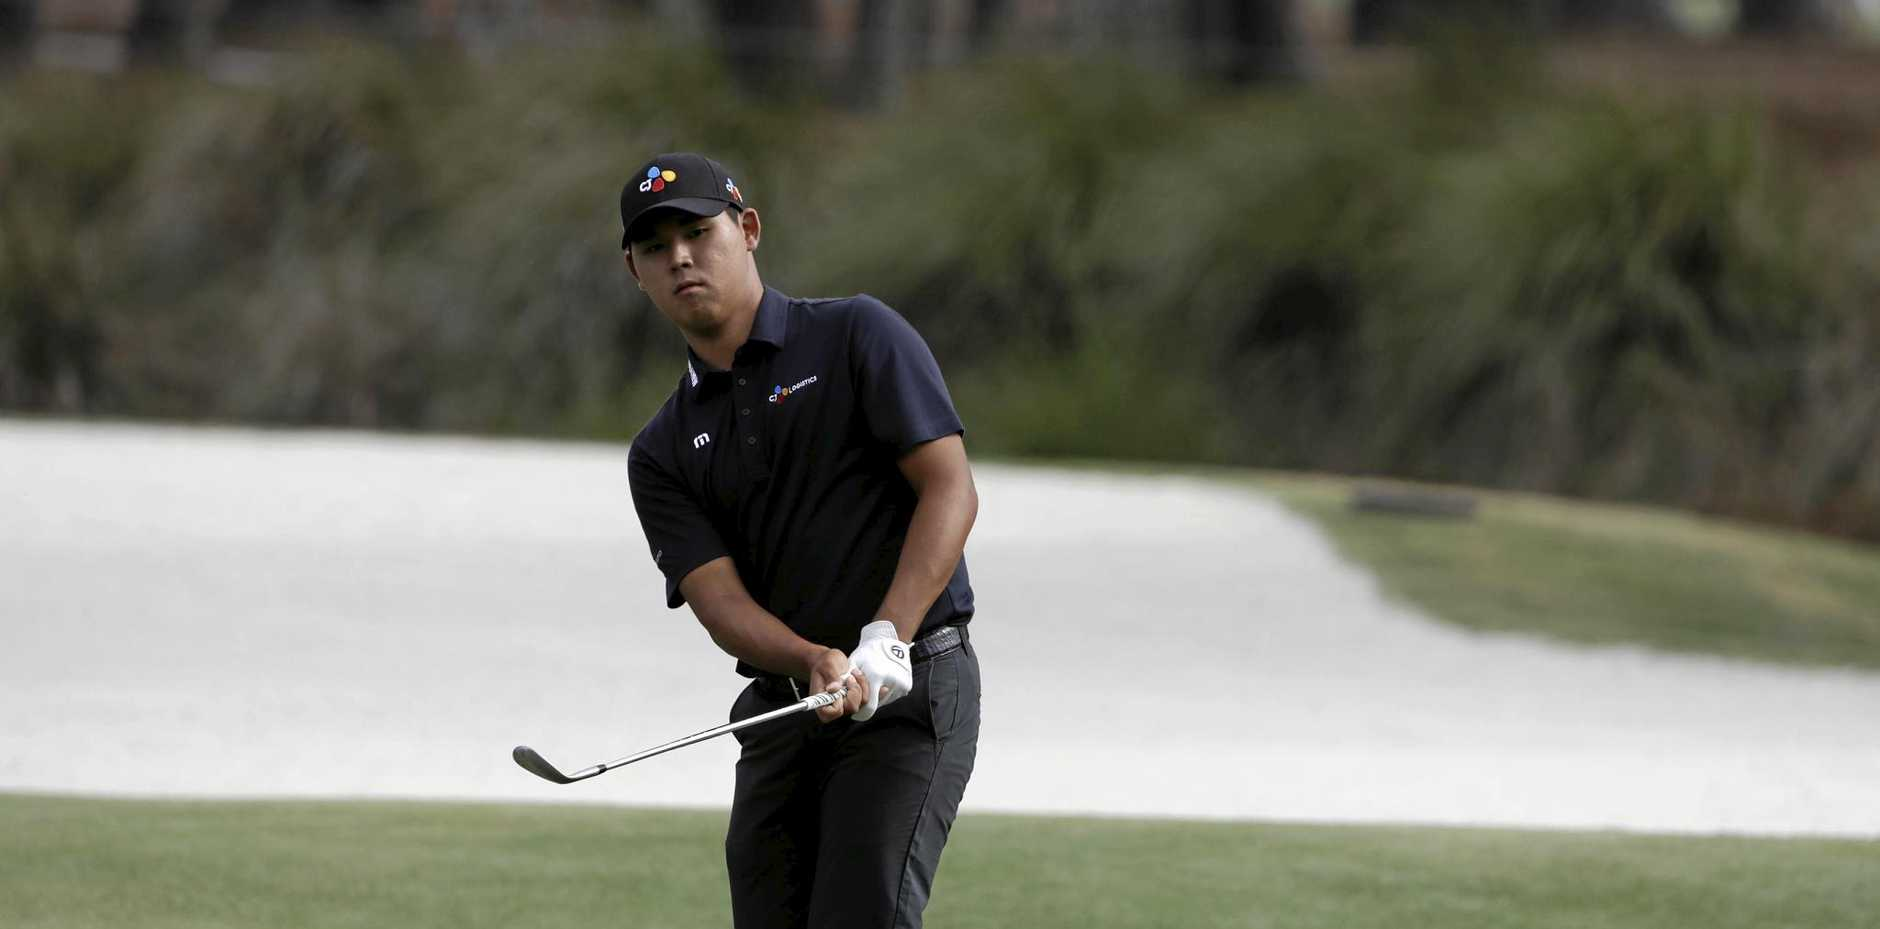 Si Woo Kim, of South Korea, during the third round of The Players Championship.